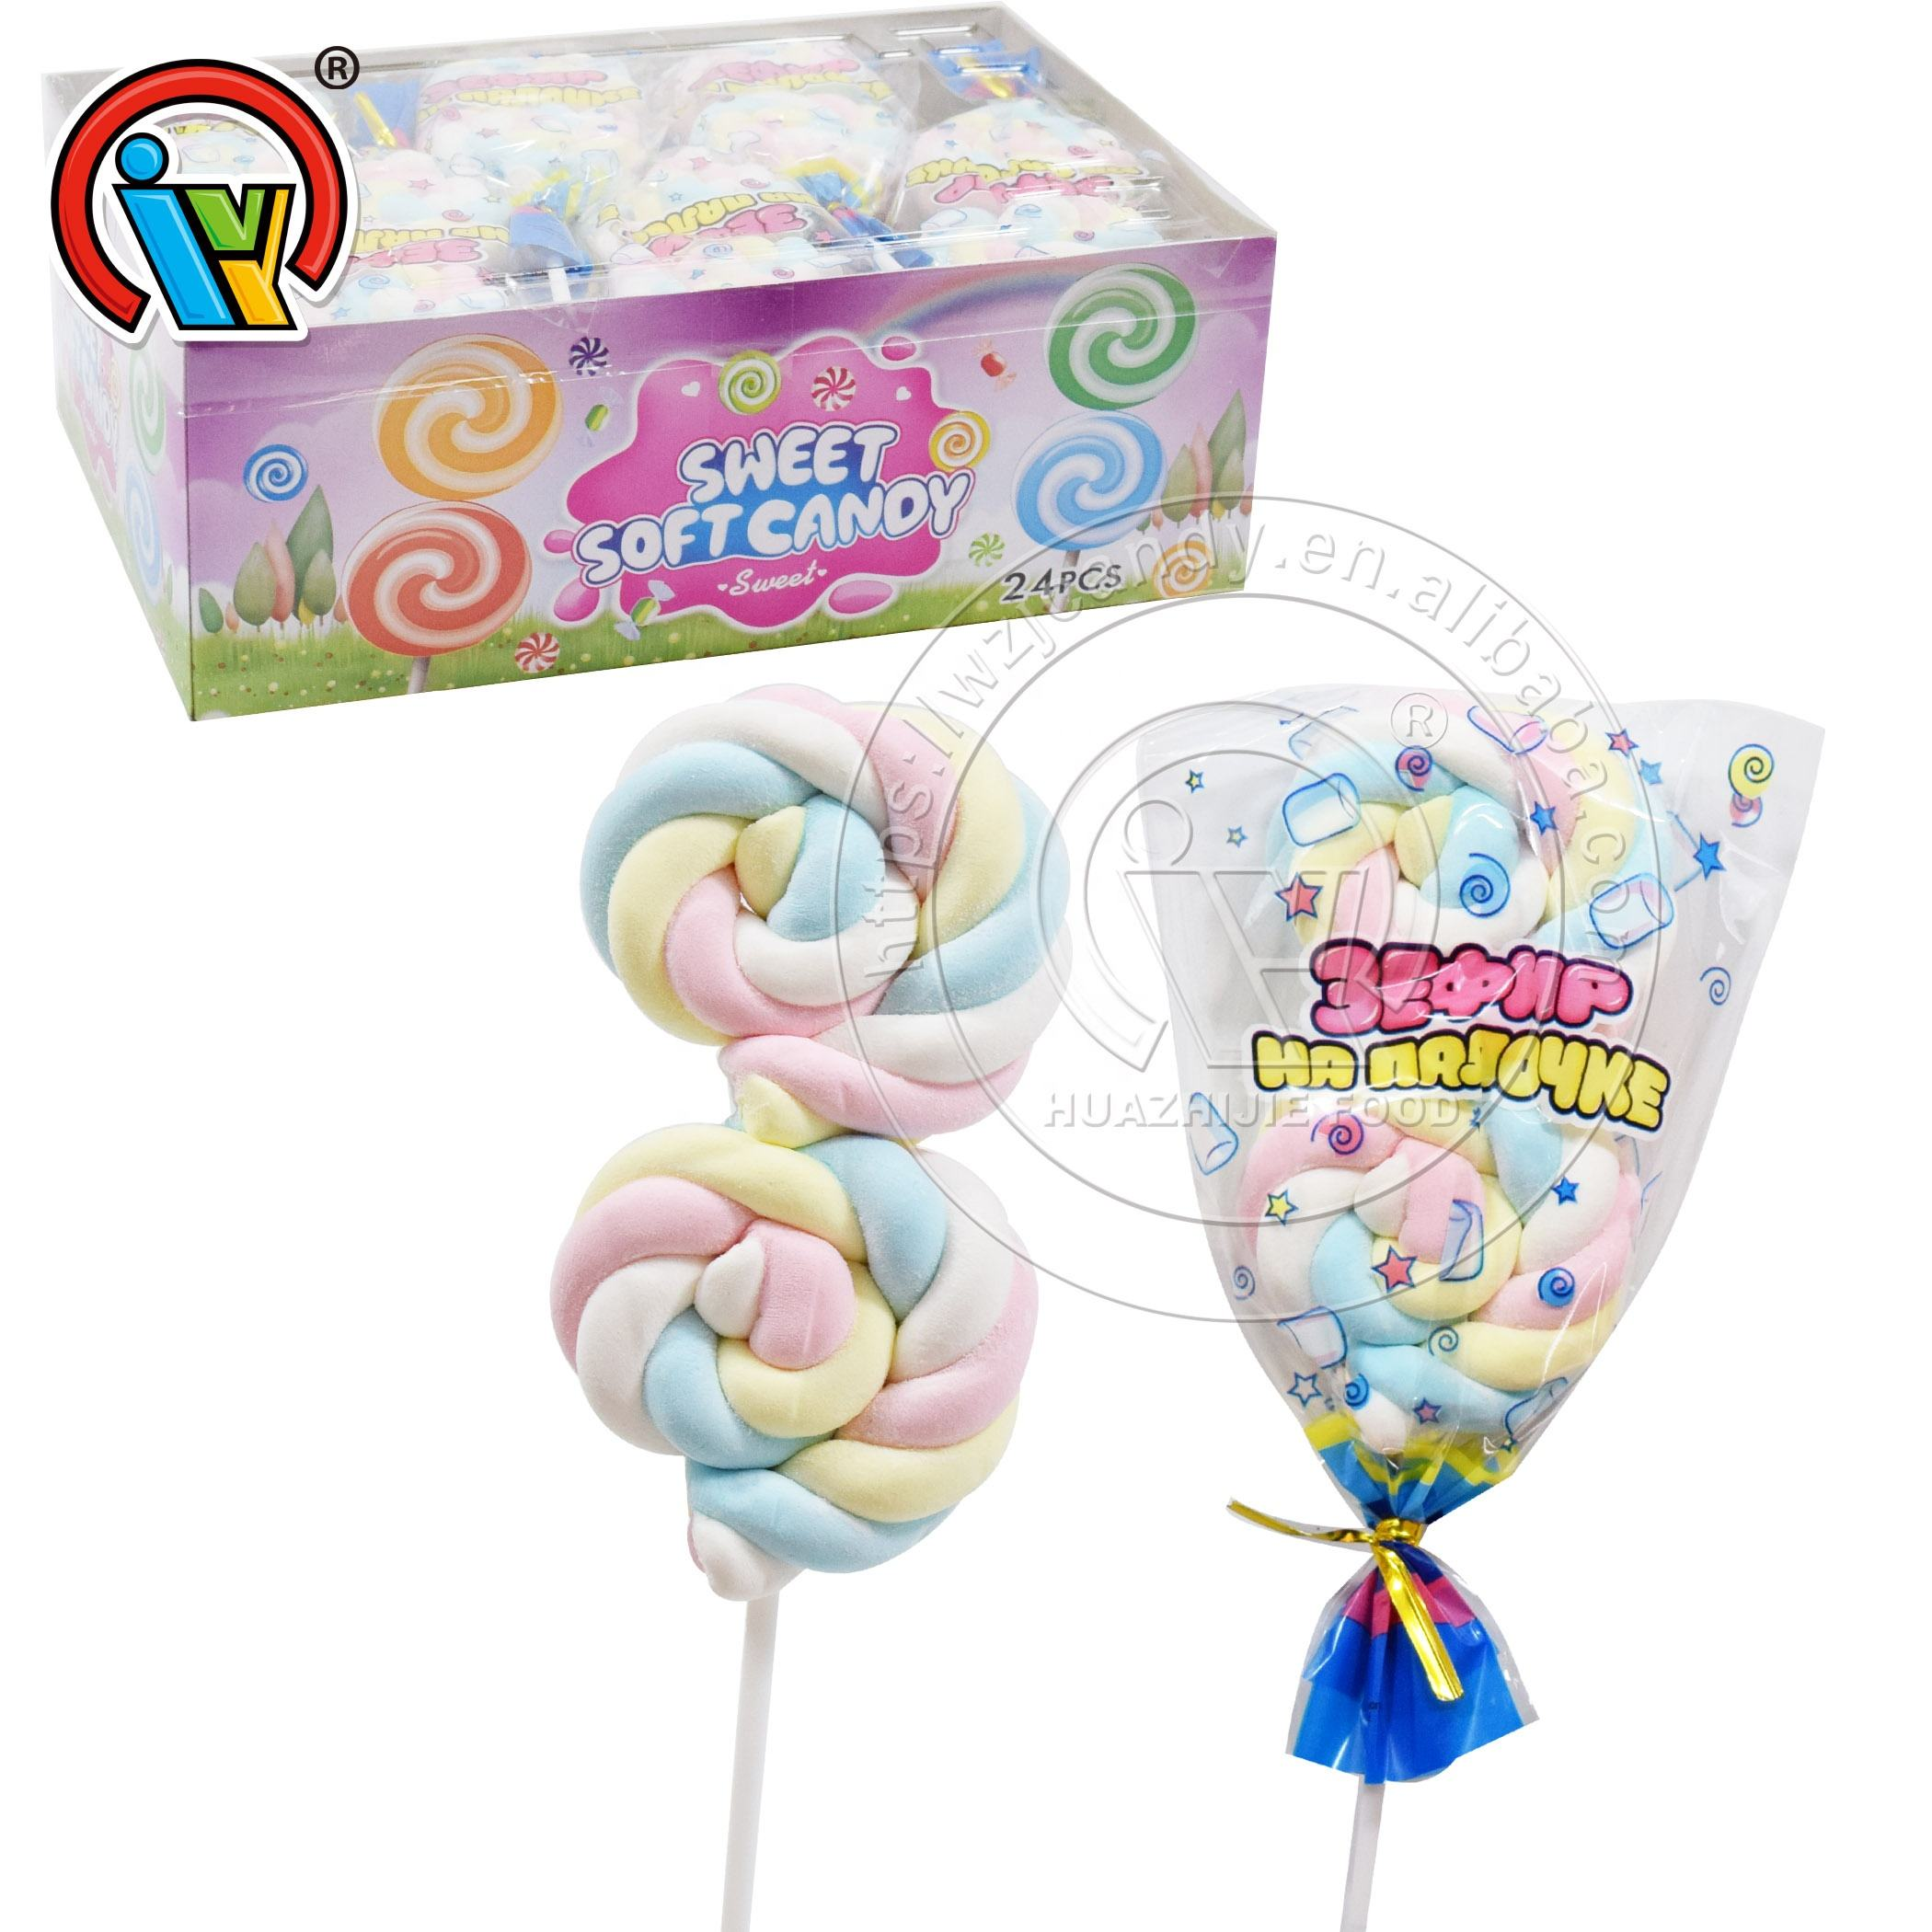 Halal Double Marshmallow Candy Cotton For Kids